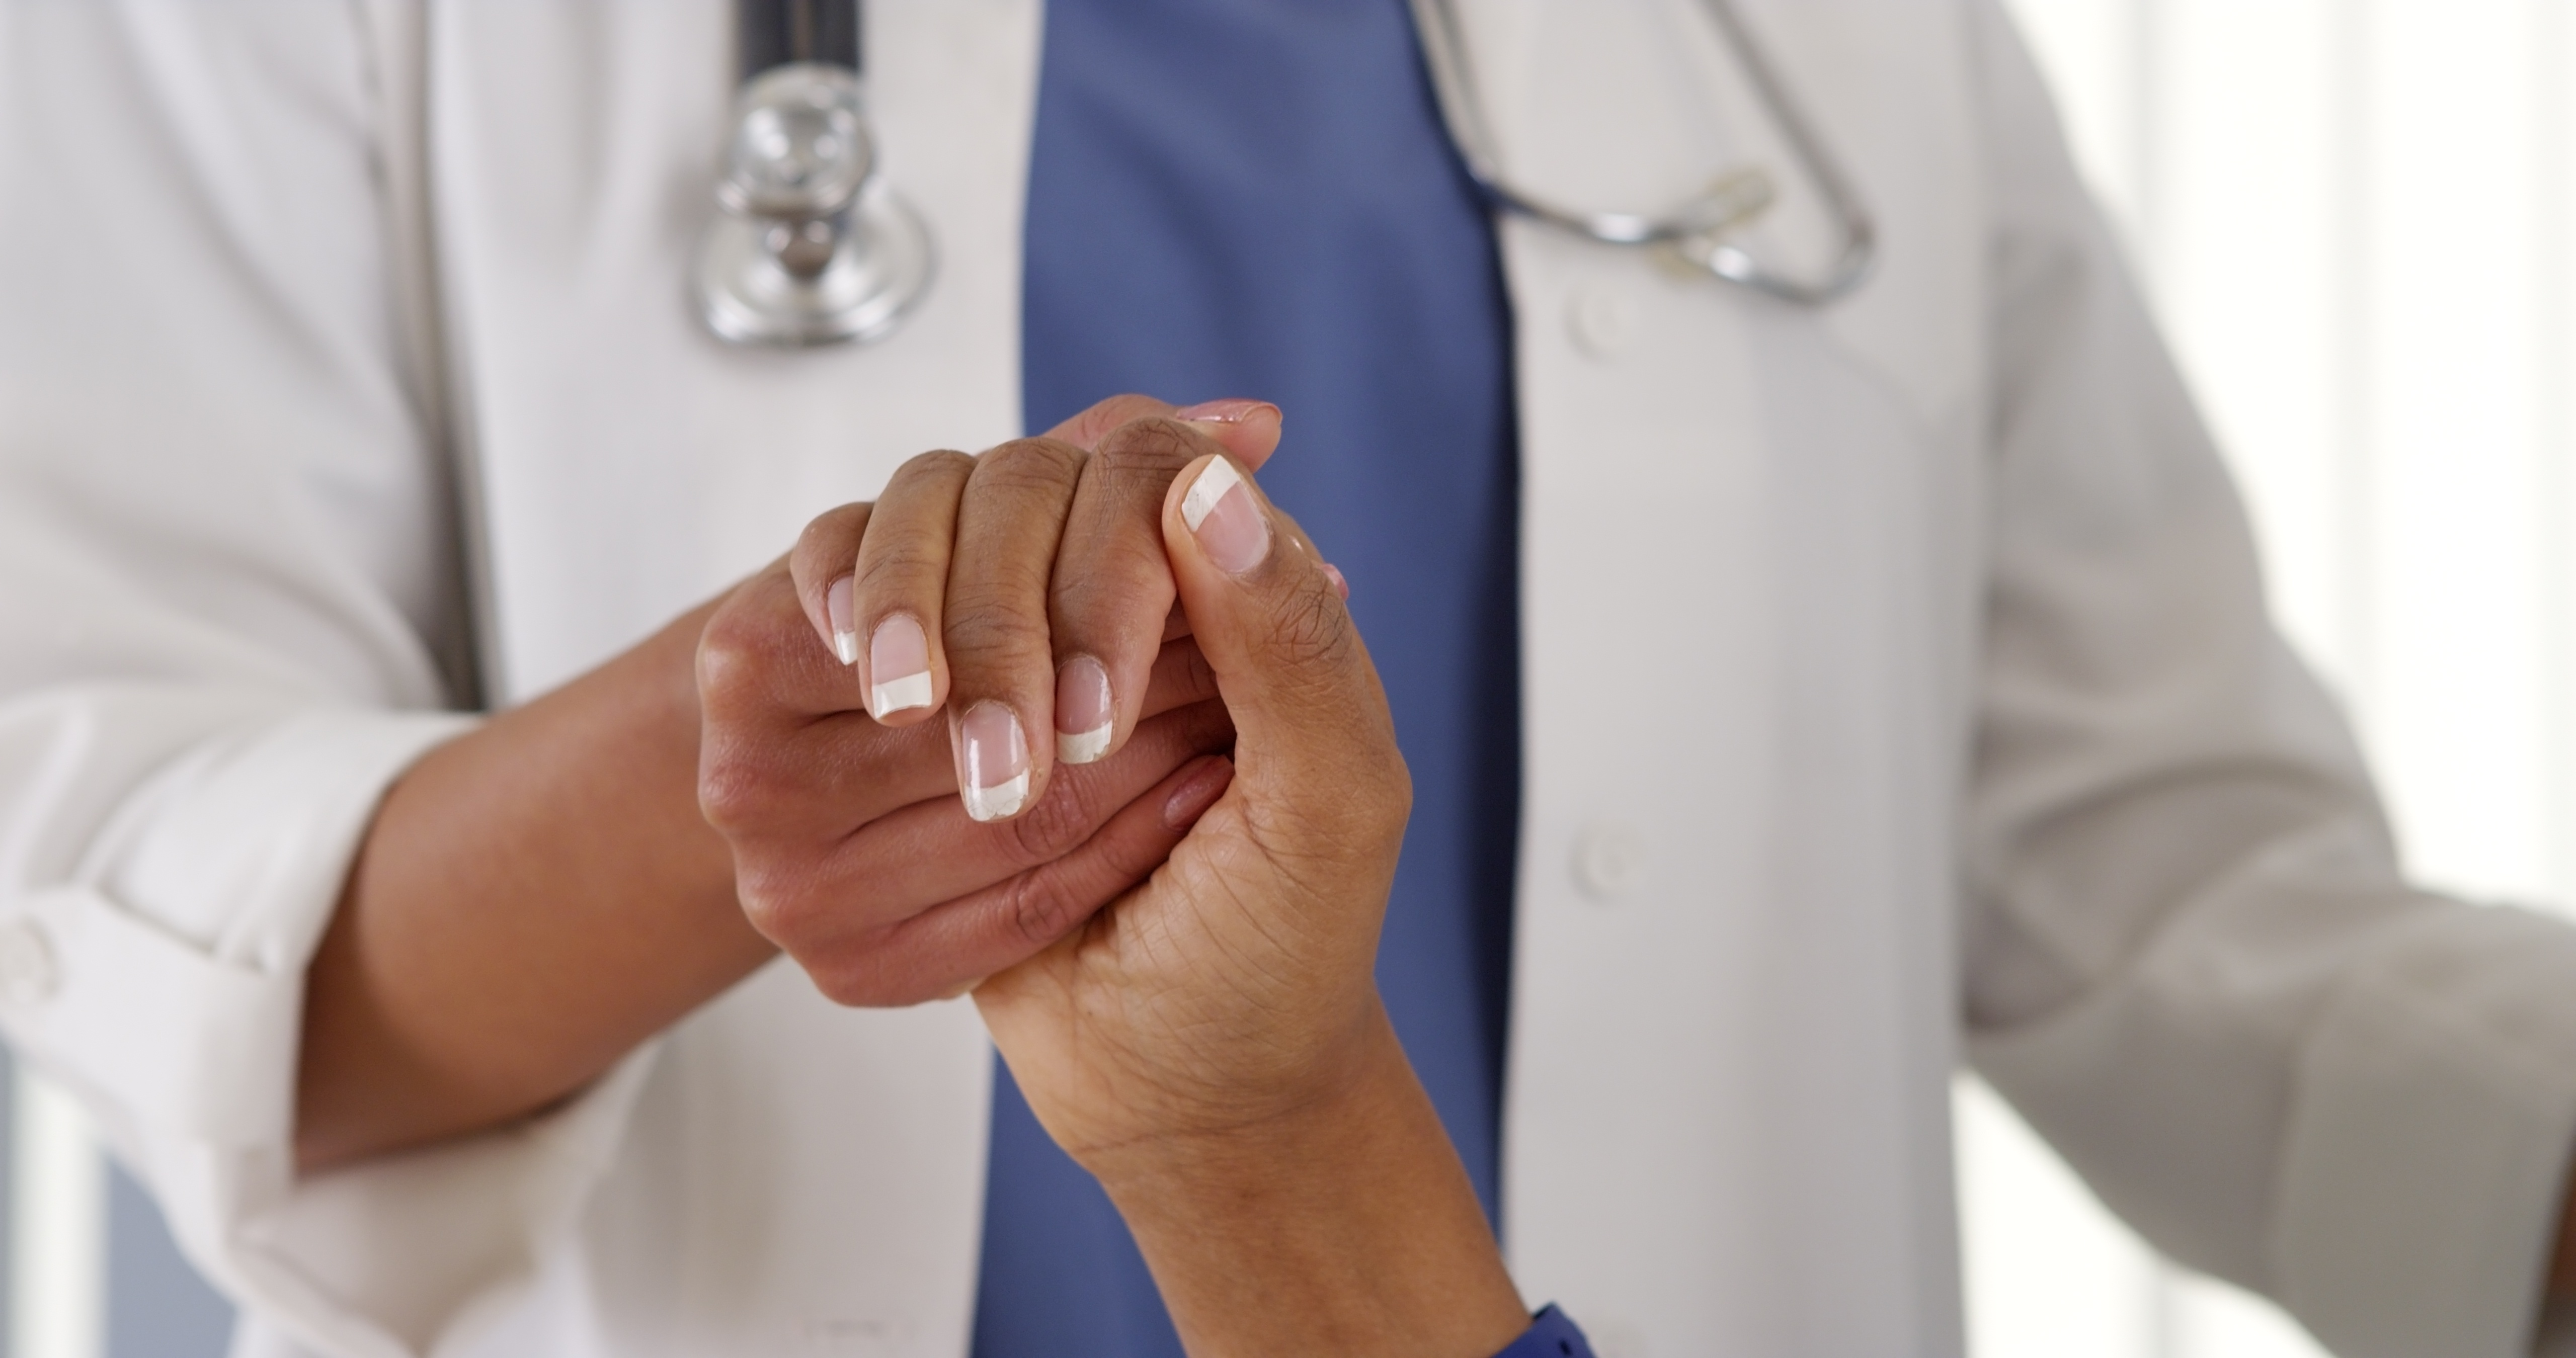 Doctor_holding_the_hand_of_a_patient.jpeg